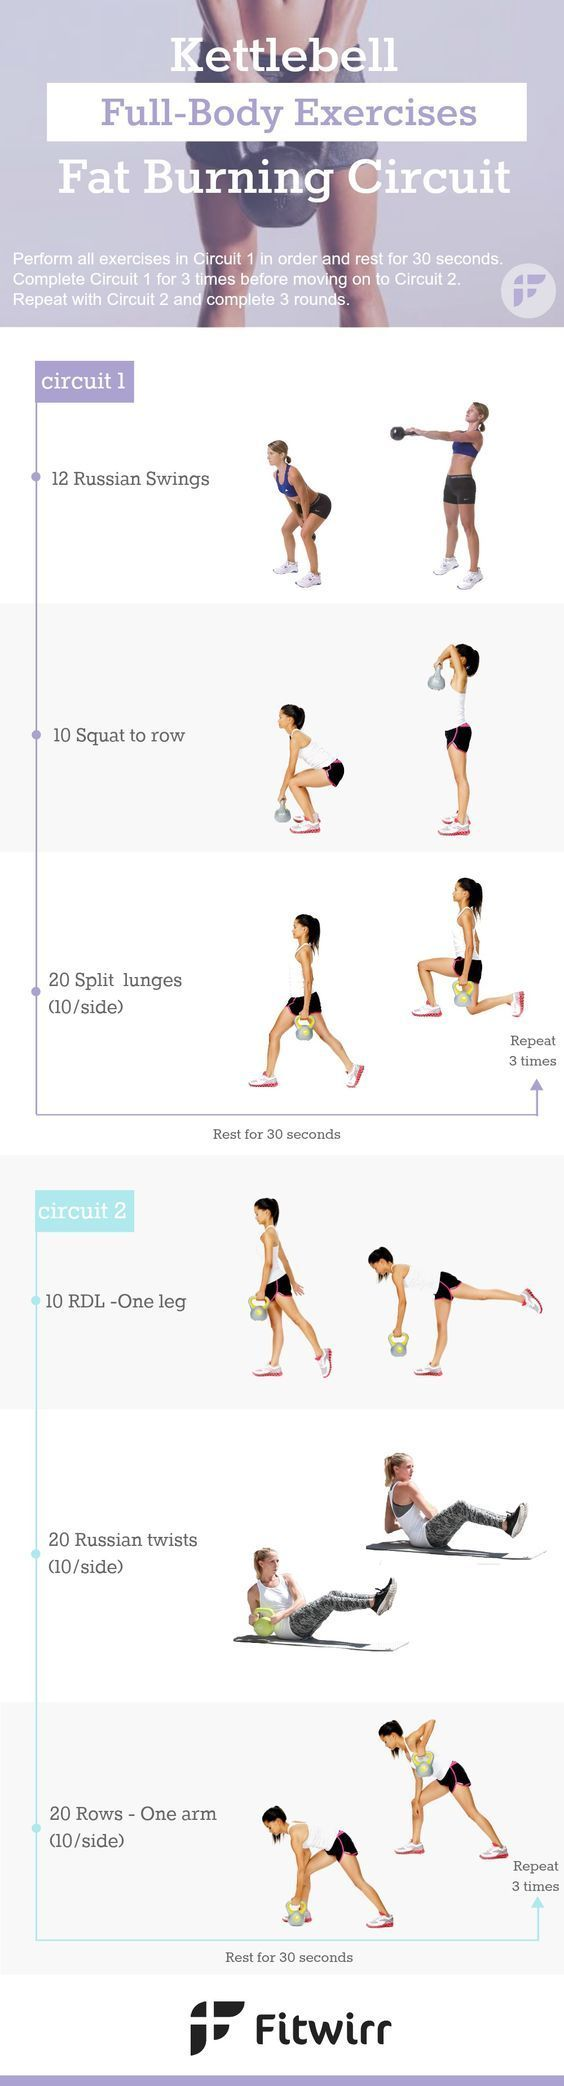 Burn calories, lose weight fast with this kettlebell workout routines -burn up to 270 calories in just 20 minutes with kettlebell exercises, more calories burned in this short workout than a typical weight training or cardio routine.: